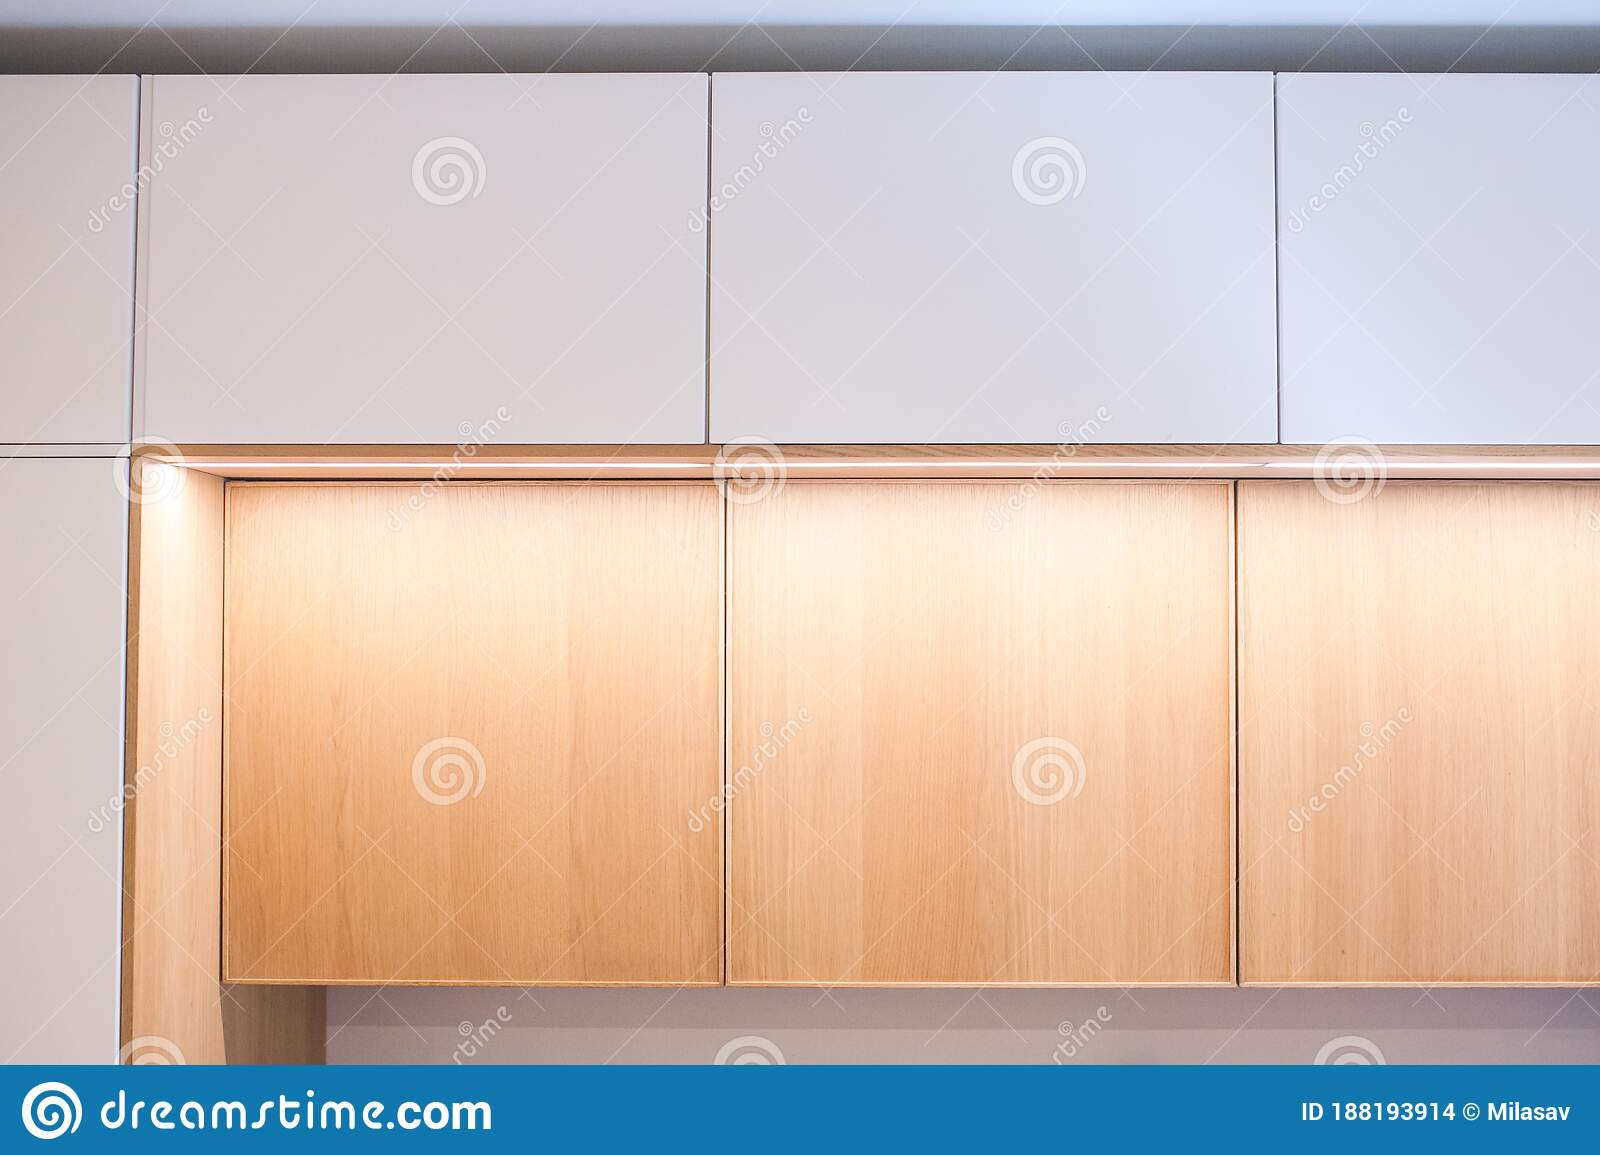 Kitchen Cabinets Shelves With Lighting Doors Oak Veneer And White Close Up Stock Photo Image Of Decor Home 188193914